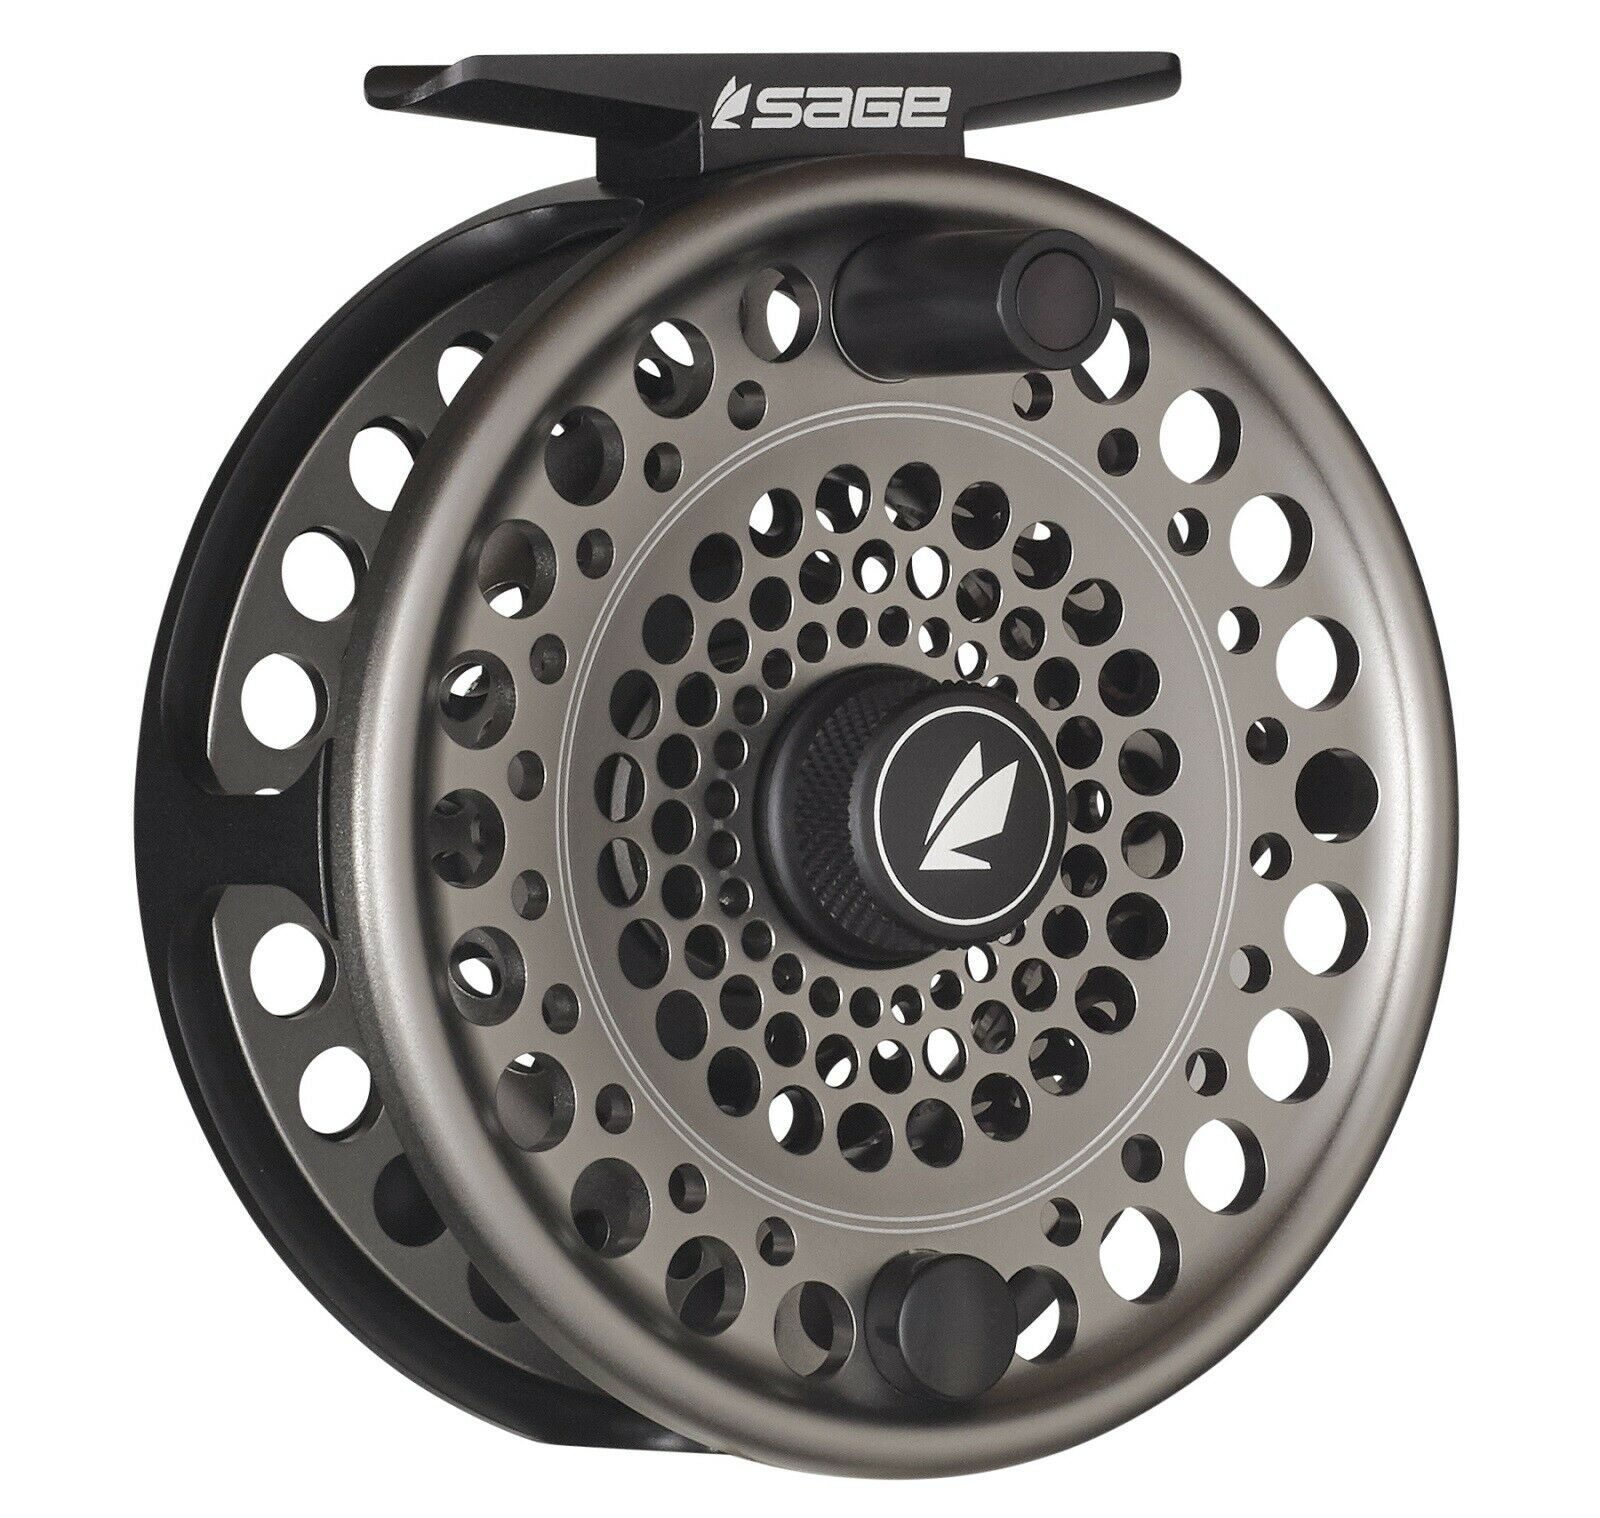 Sage Trout 2/3/4 Fly Reel - Stealth/Silver - NEW - FREE FLY LINE